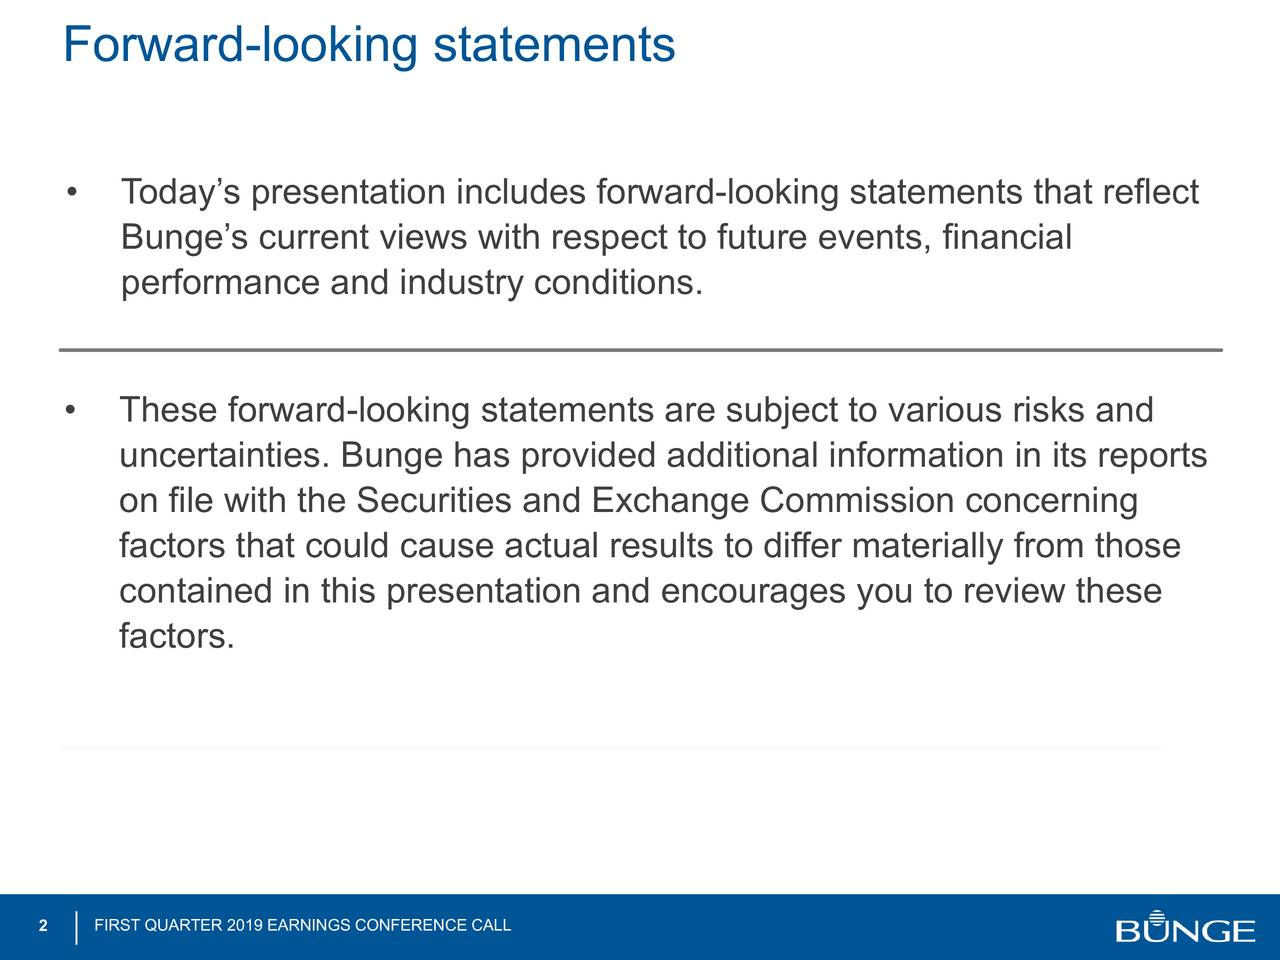 • Today's presentation includes forward-looking statements that reflect Bunge's current views with respect to future events, financial performance and industry conditions. • These forward-looking statements are s#2ject to various risks and uncertainties. Bunge has provided additional information in its reports on file with the Securities and Exchange Commission concerning factors that could cause actual results to differ materially from those contained in this presentation and encourages you to review these factors. 2 FIRST QUARTER 2019 EARNINGS CONFERENCE CALL